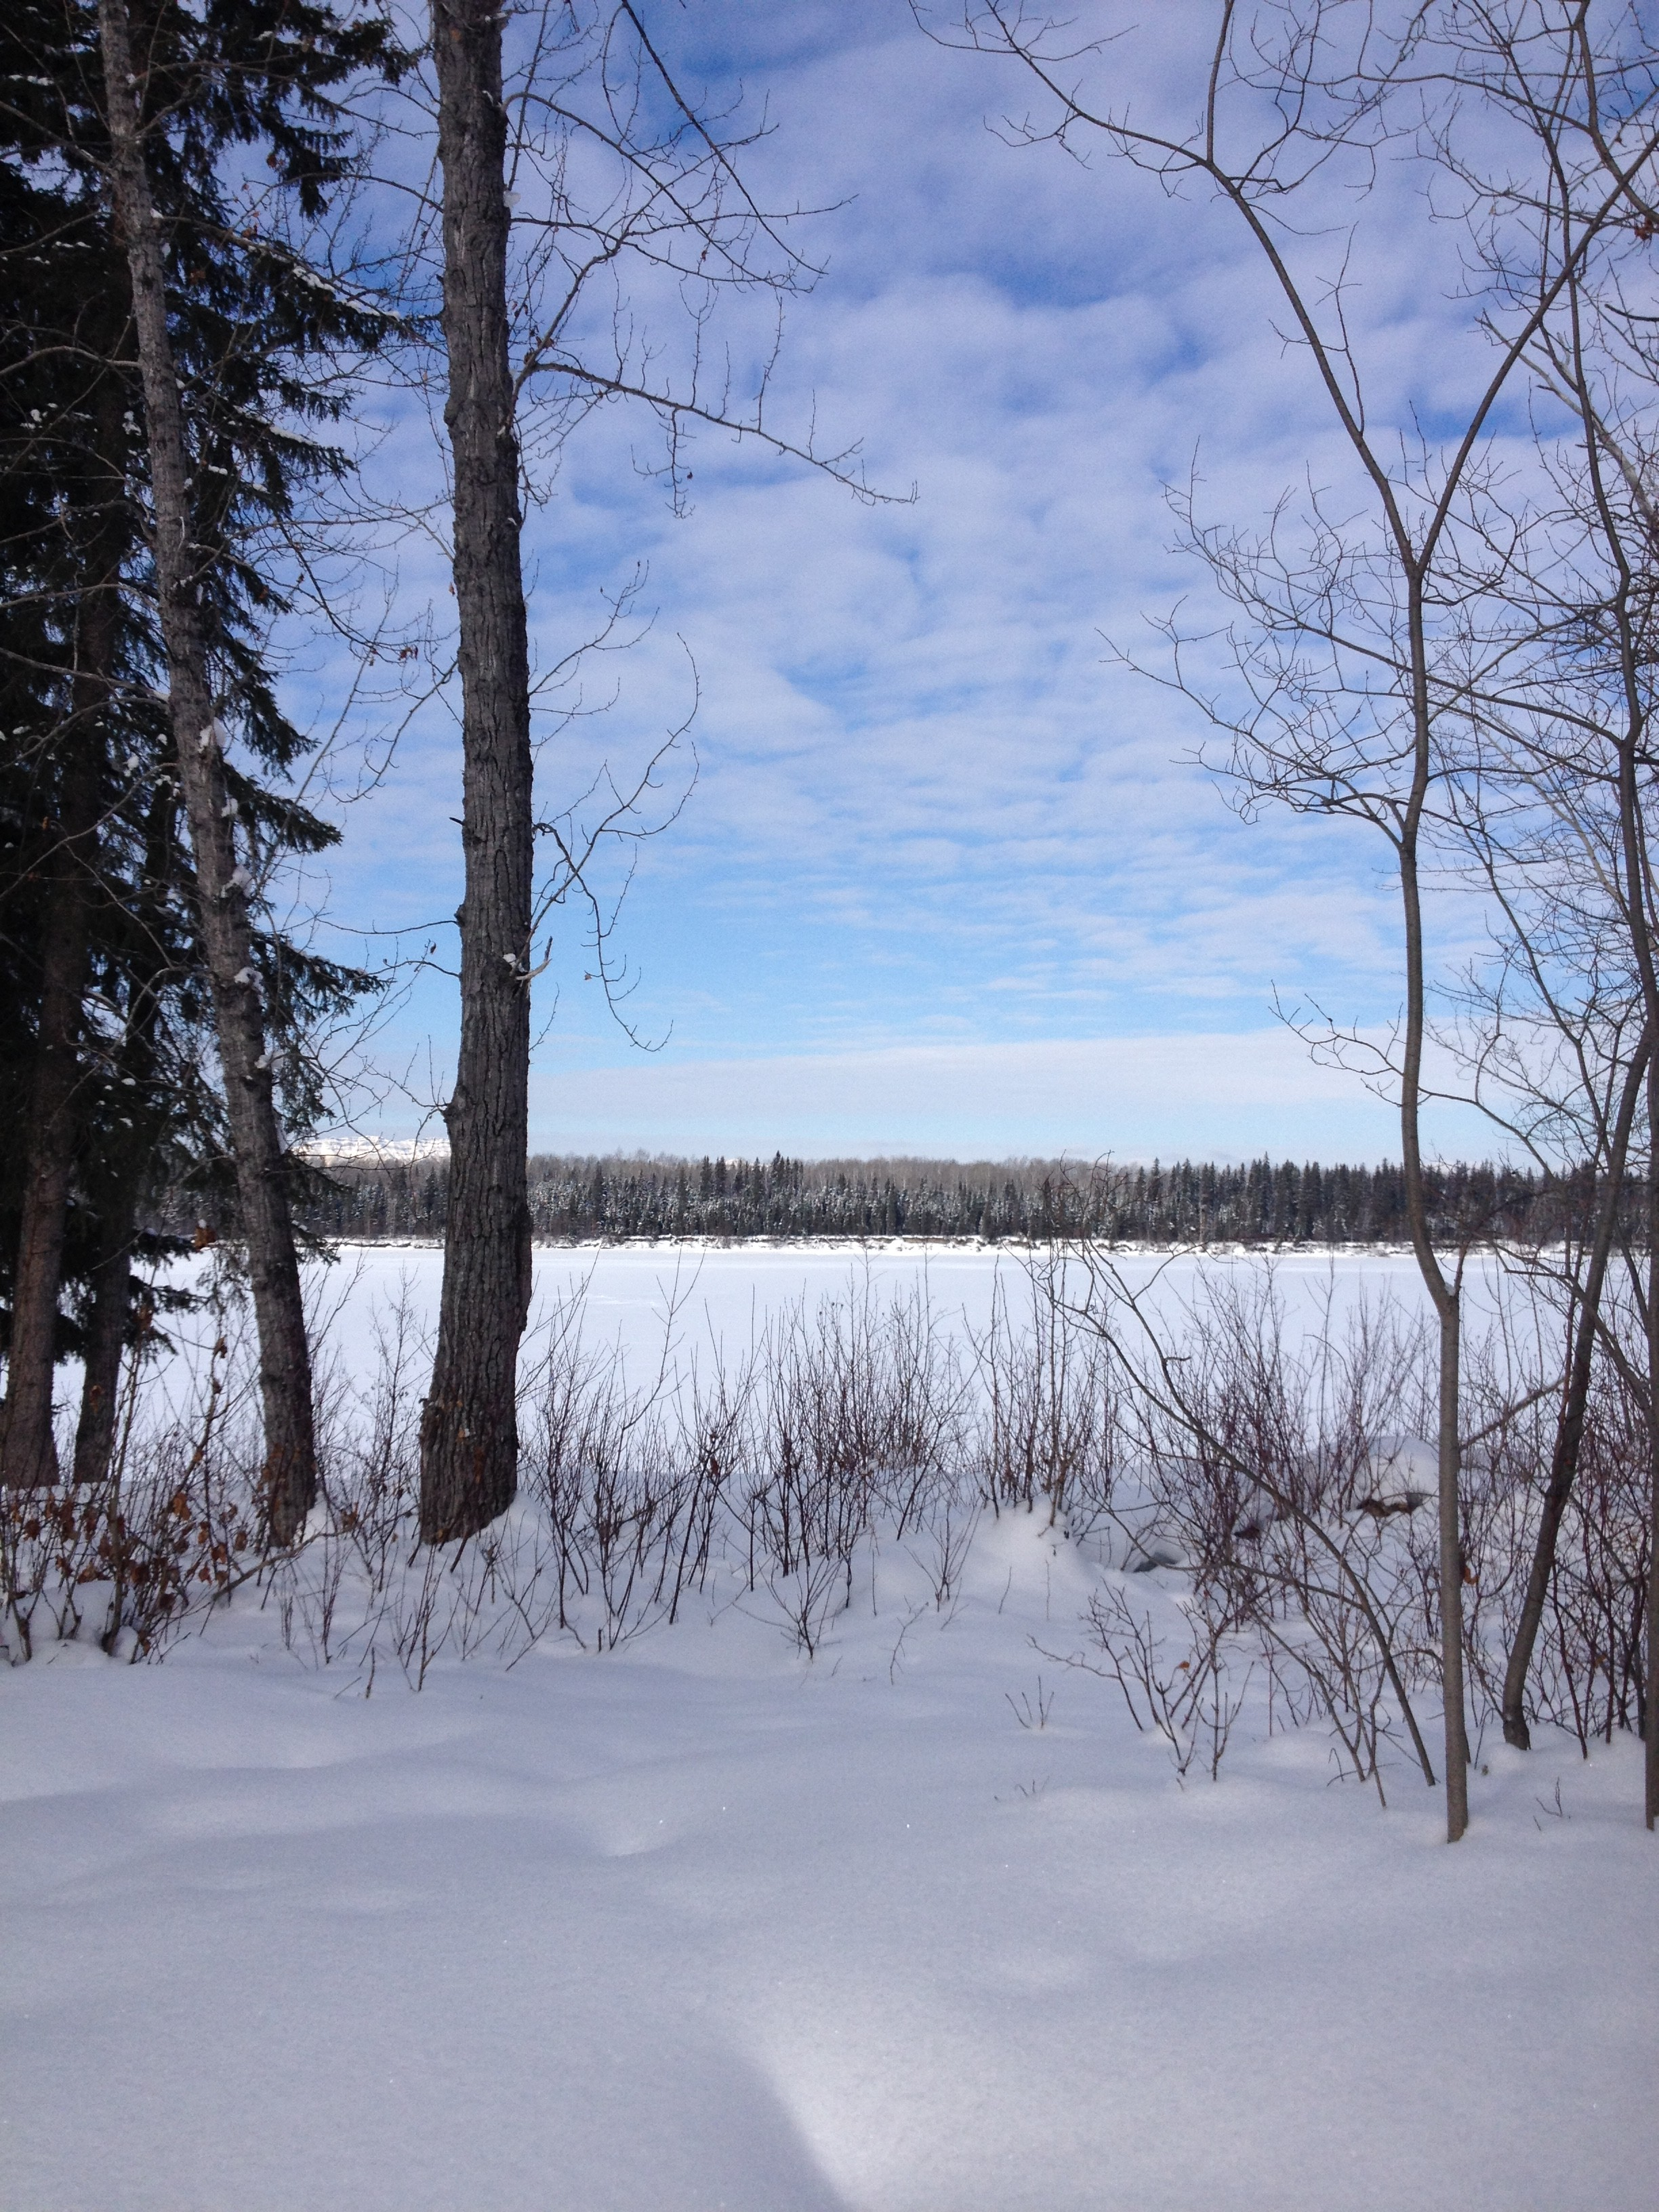 Liard River, Northwest Territories